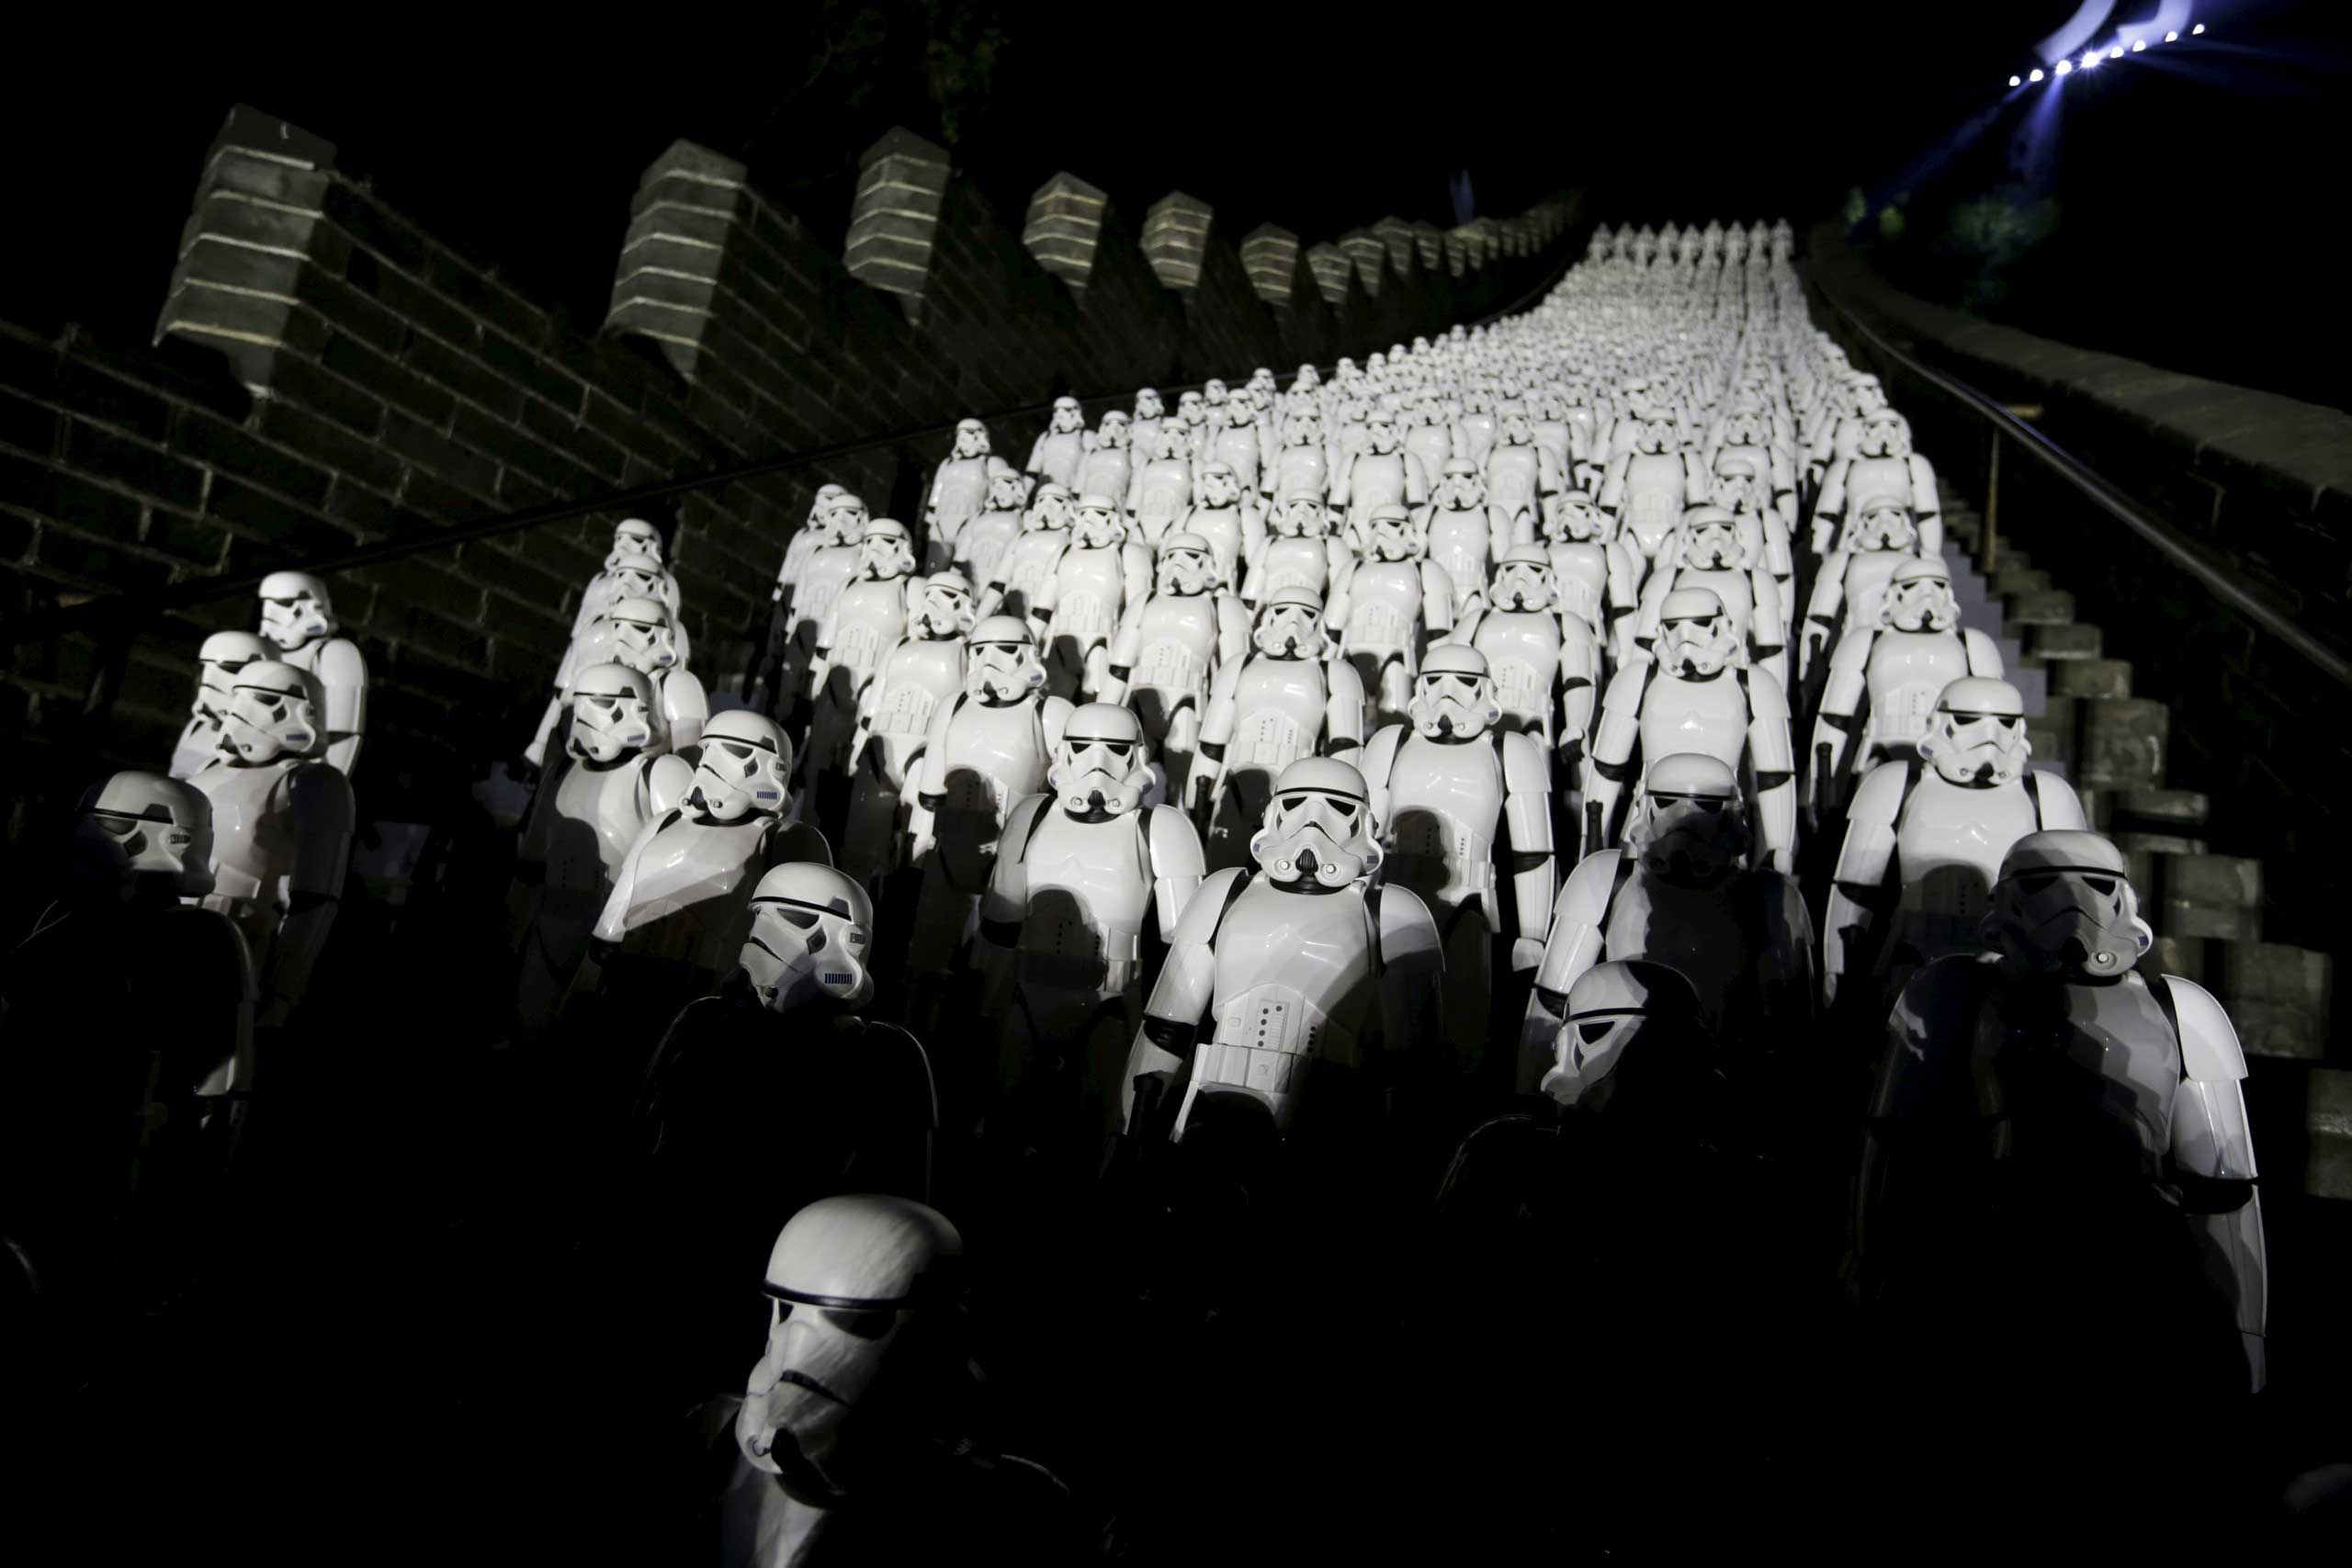 Five hundred replicas of the Stormtroopers characters from  Star Wars  are seen on the steps at the Juyongguan section of the Great Wall of China during a promotional event for  Star Wars: The Force Awakens  film, on the outskirts of Beijing, Oct. 20, 2015.